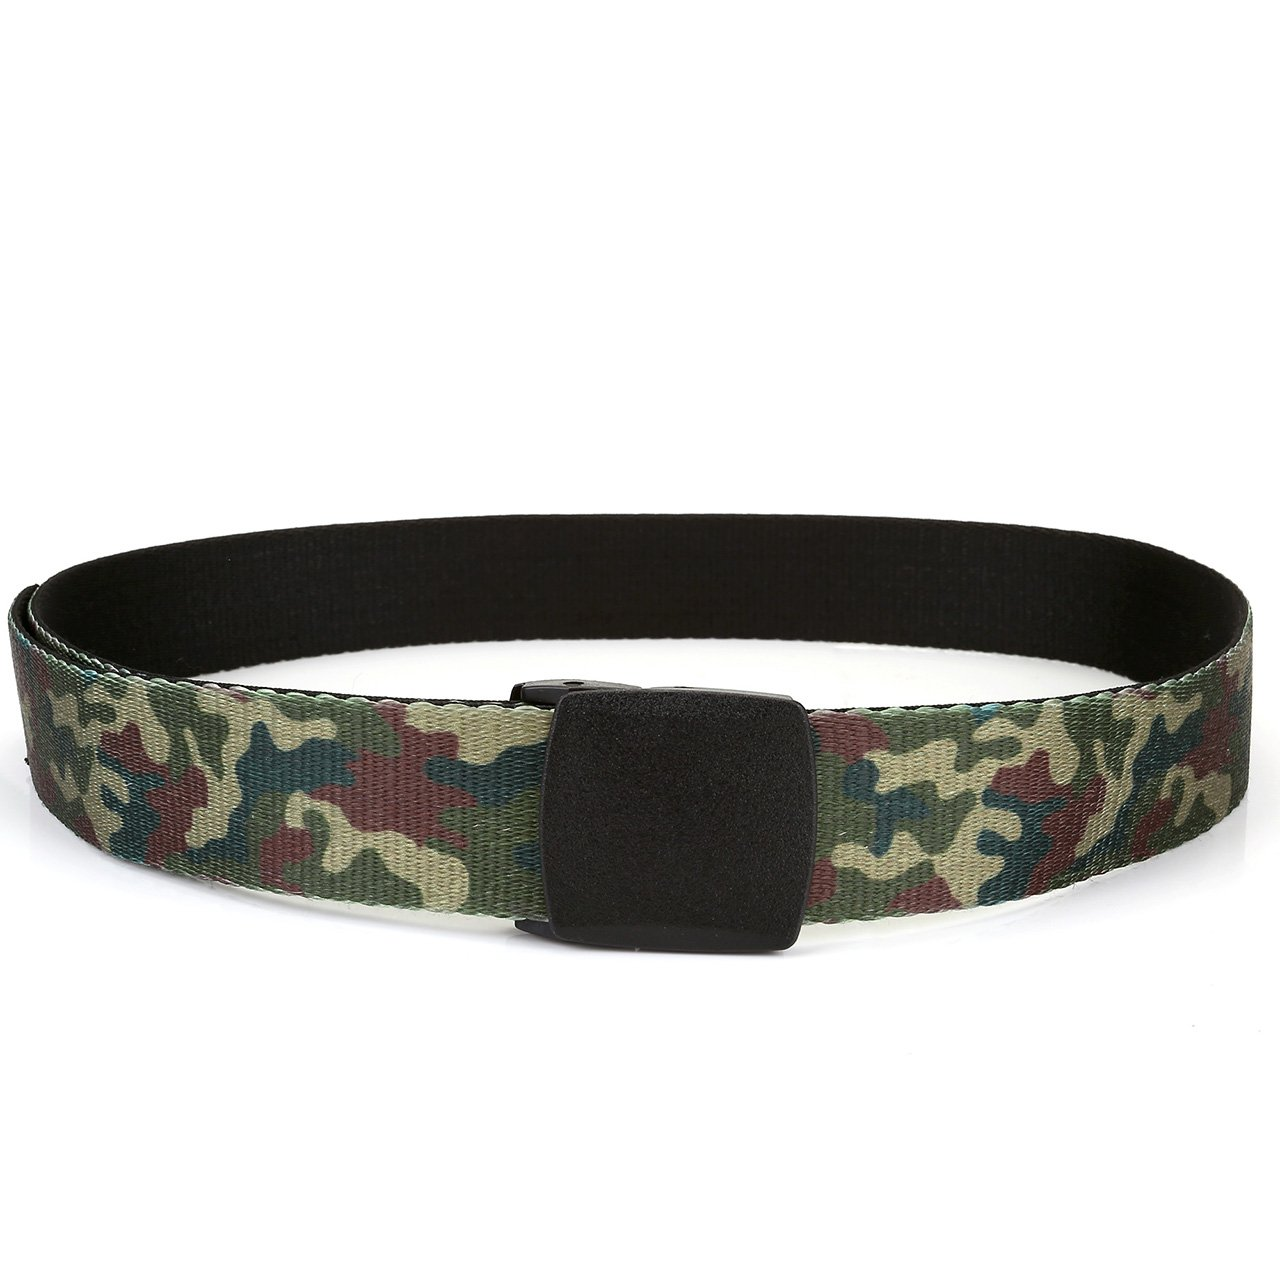 Faleto Nylon Canvas Breathable Military Tactical Men Waist Belt With Plastic Buckle